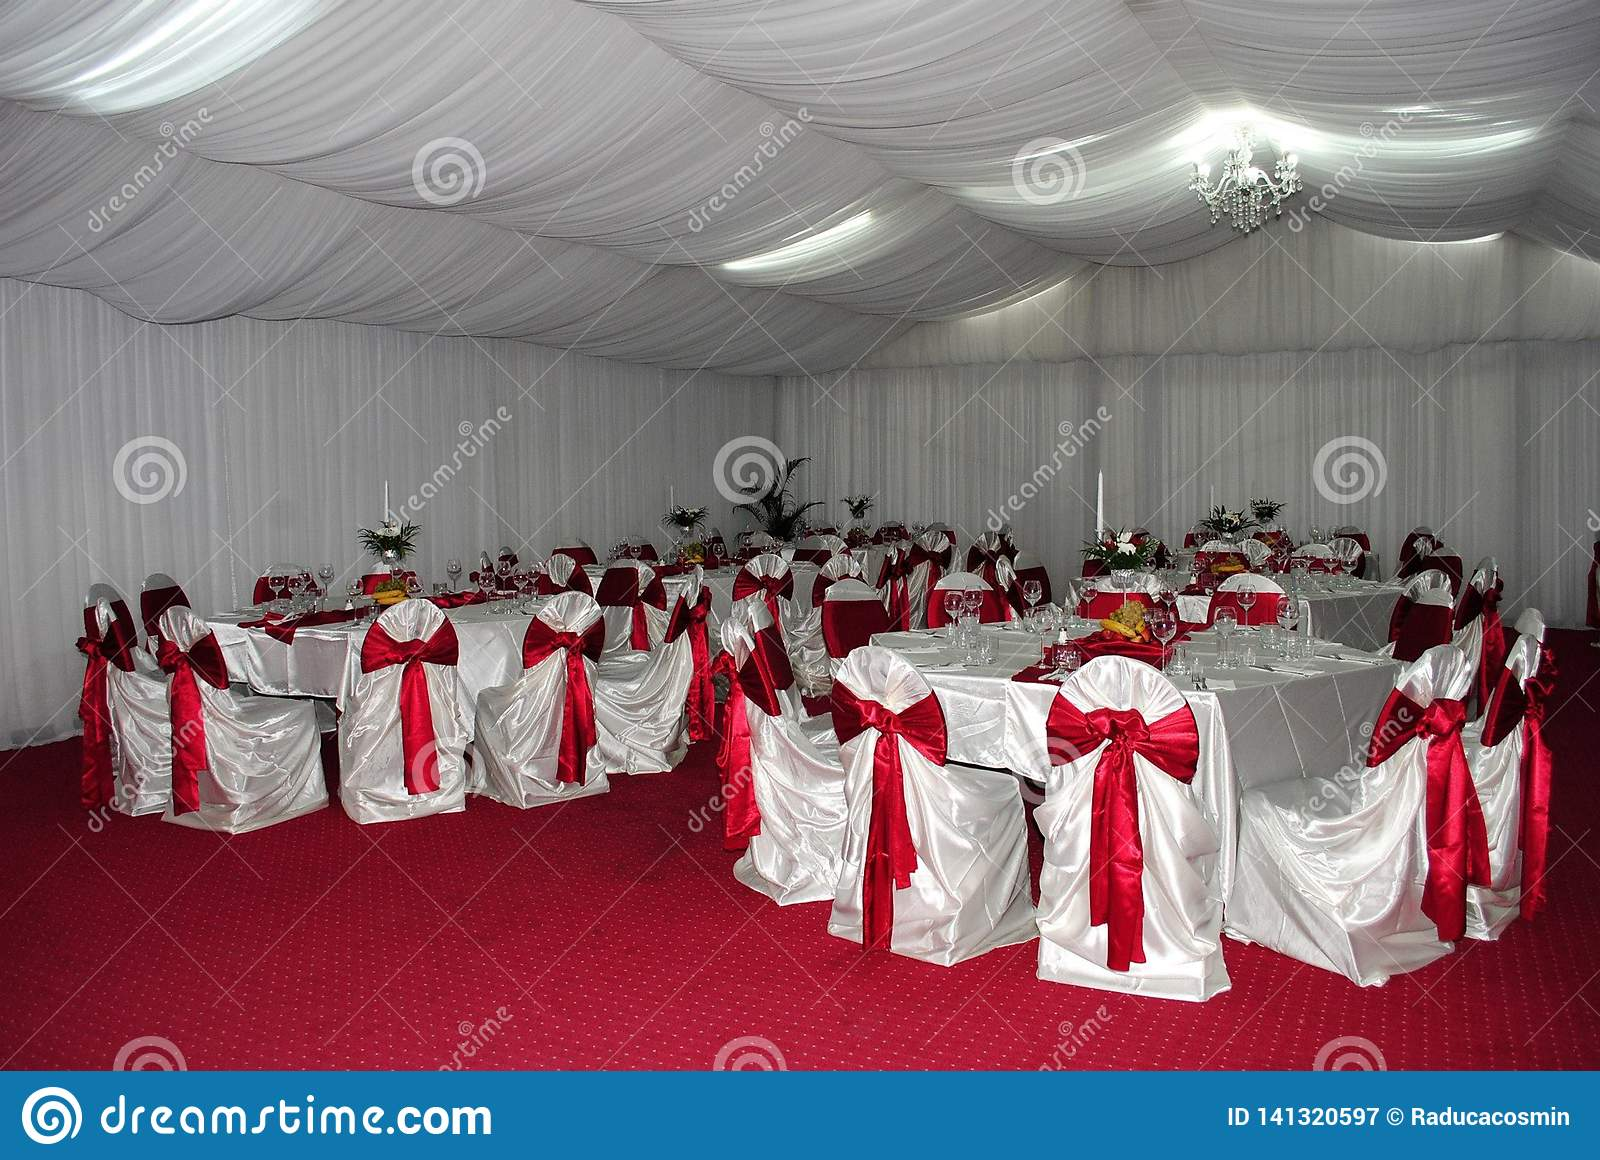 Wedding arrangement with white and red chairs awaiting guests